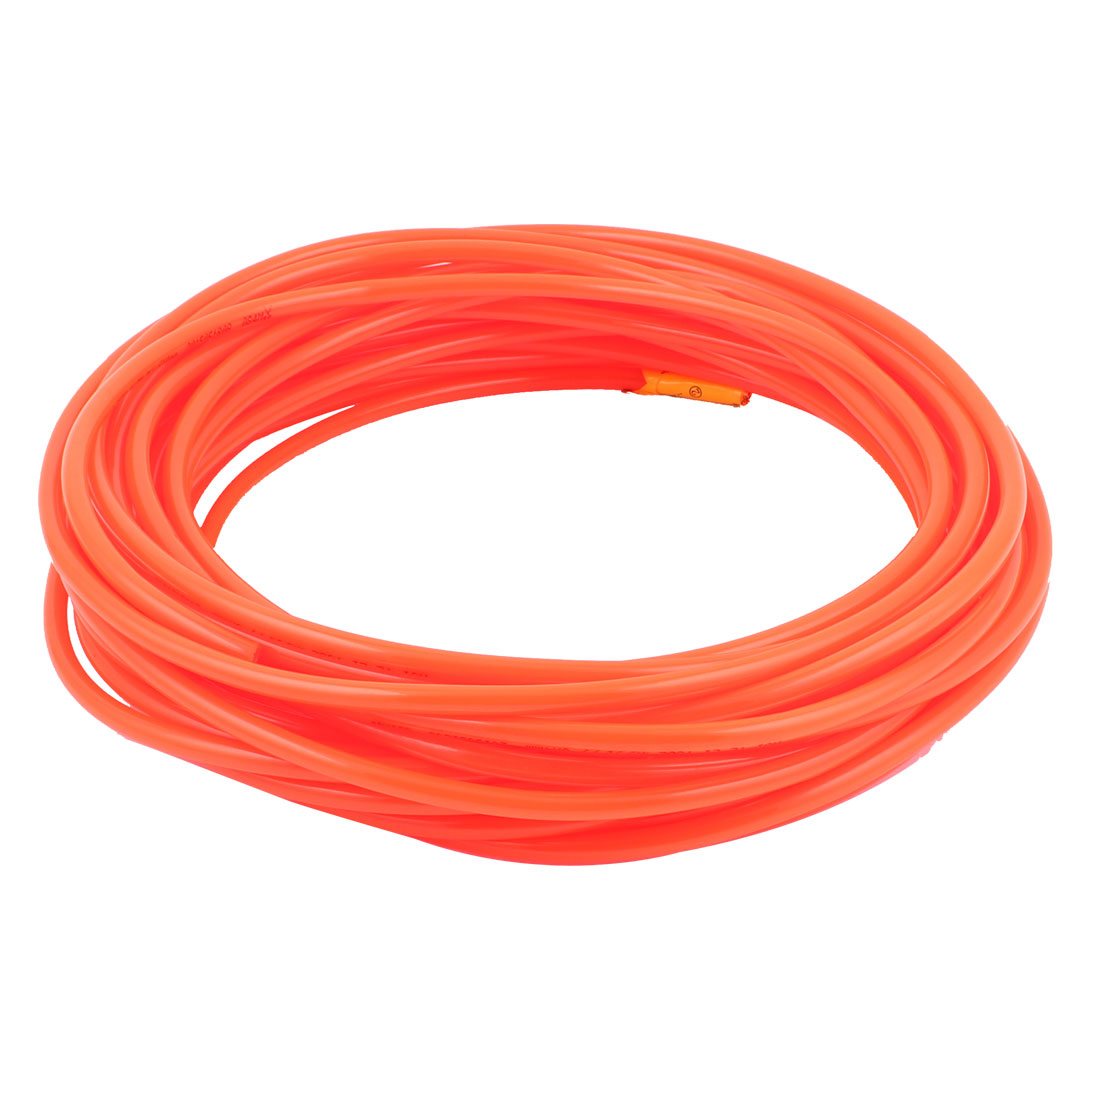 15m Polyurethane Tube PU Air Compressor Hose Pneumatics Plastic Orange 6*4MM